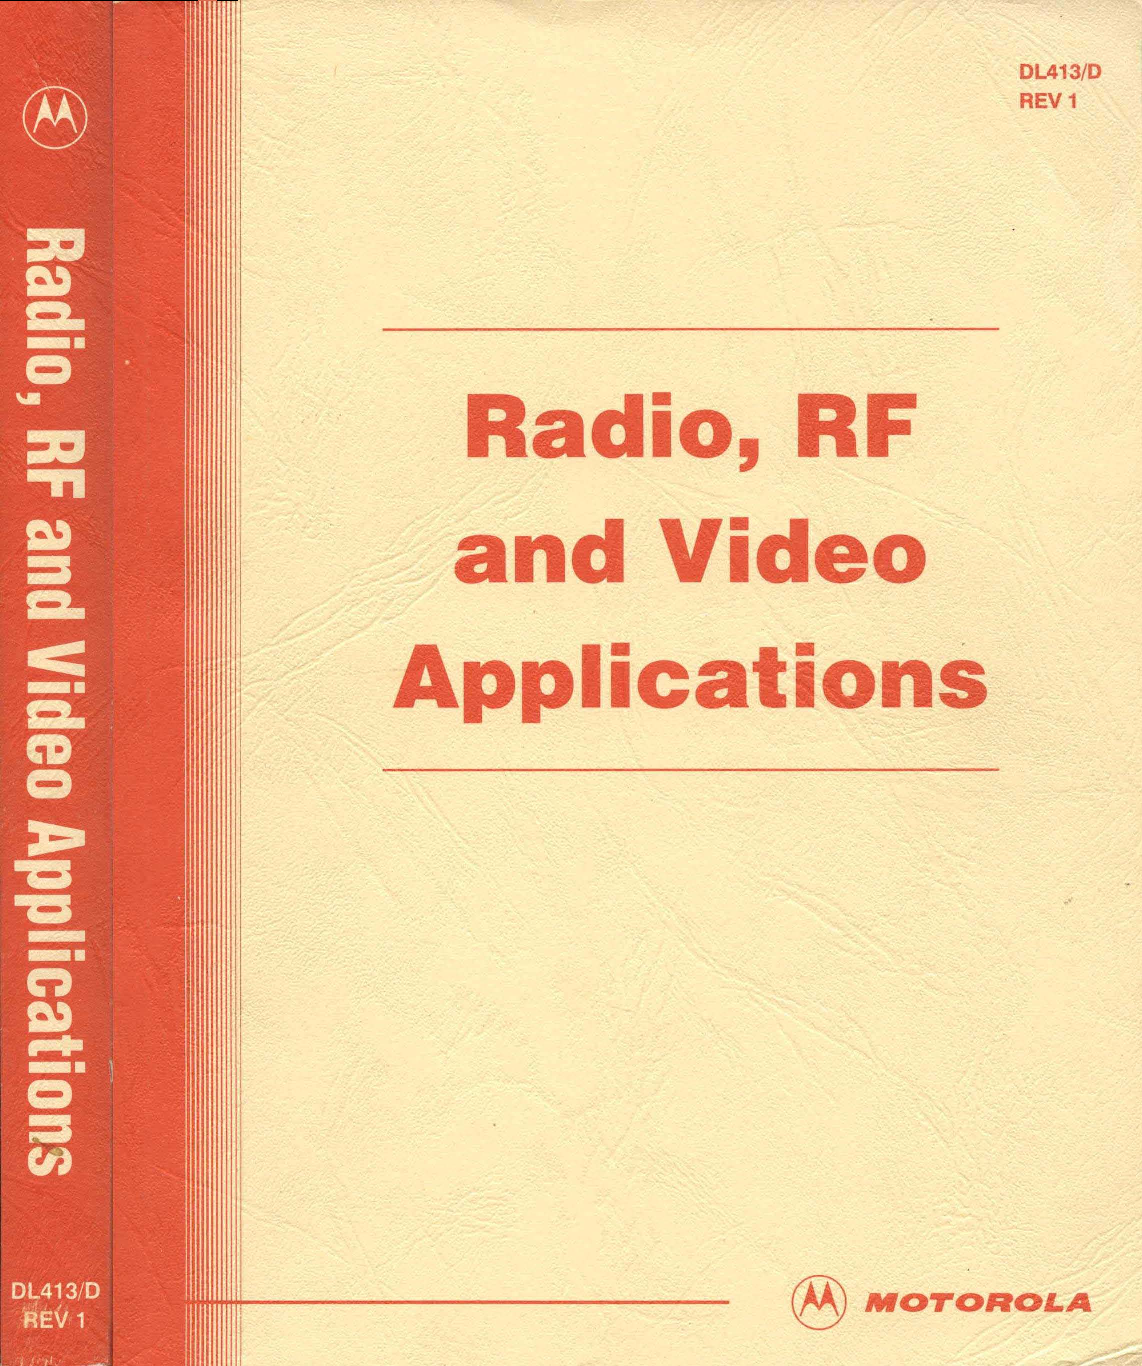 Dl413 Rev 1 Motorola Radio Rf And Video Applications 1994 Super Zener Variable Diode Circuit Using 741 Op Amp